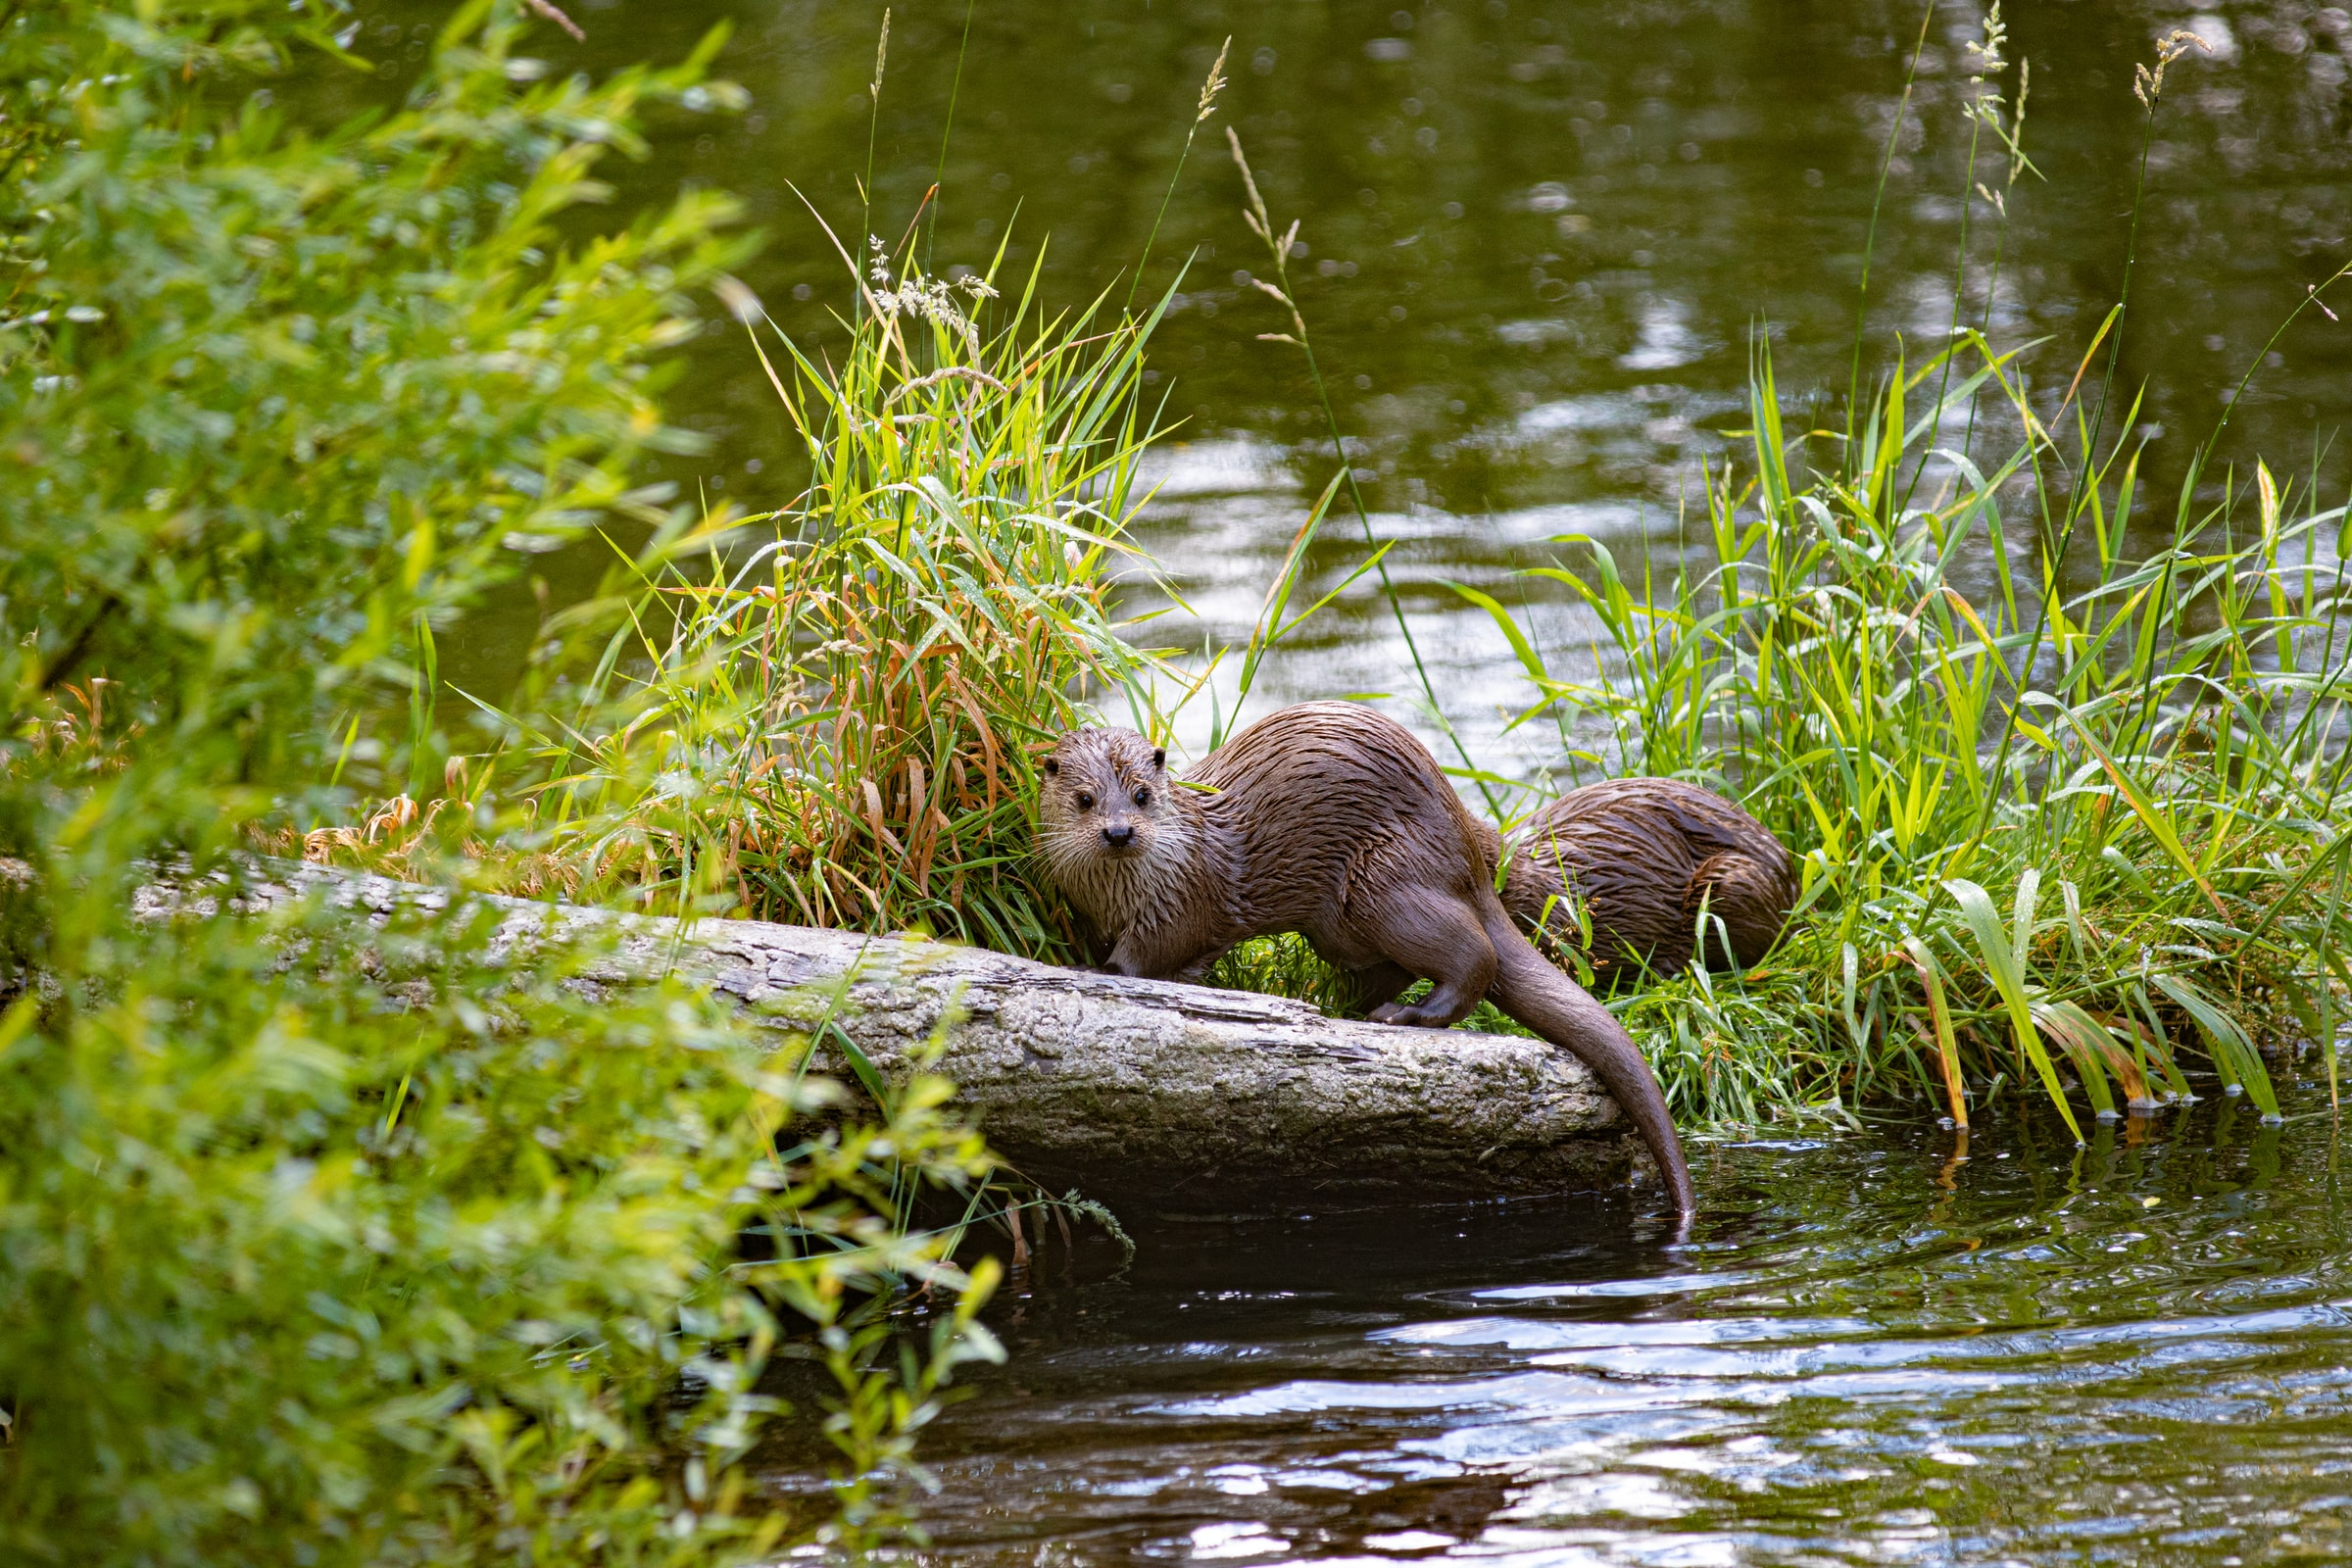 An otter in the river